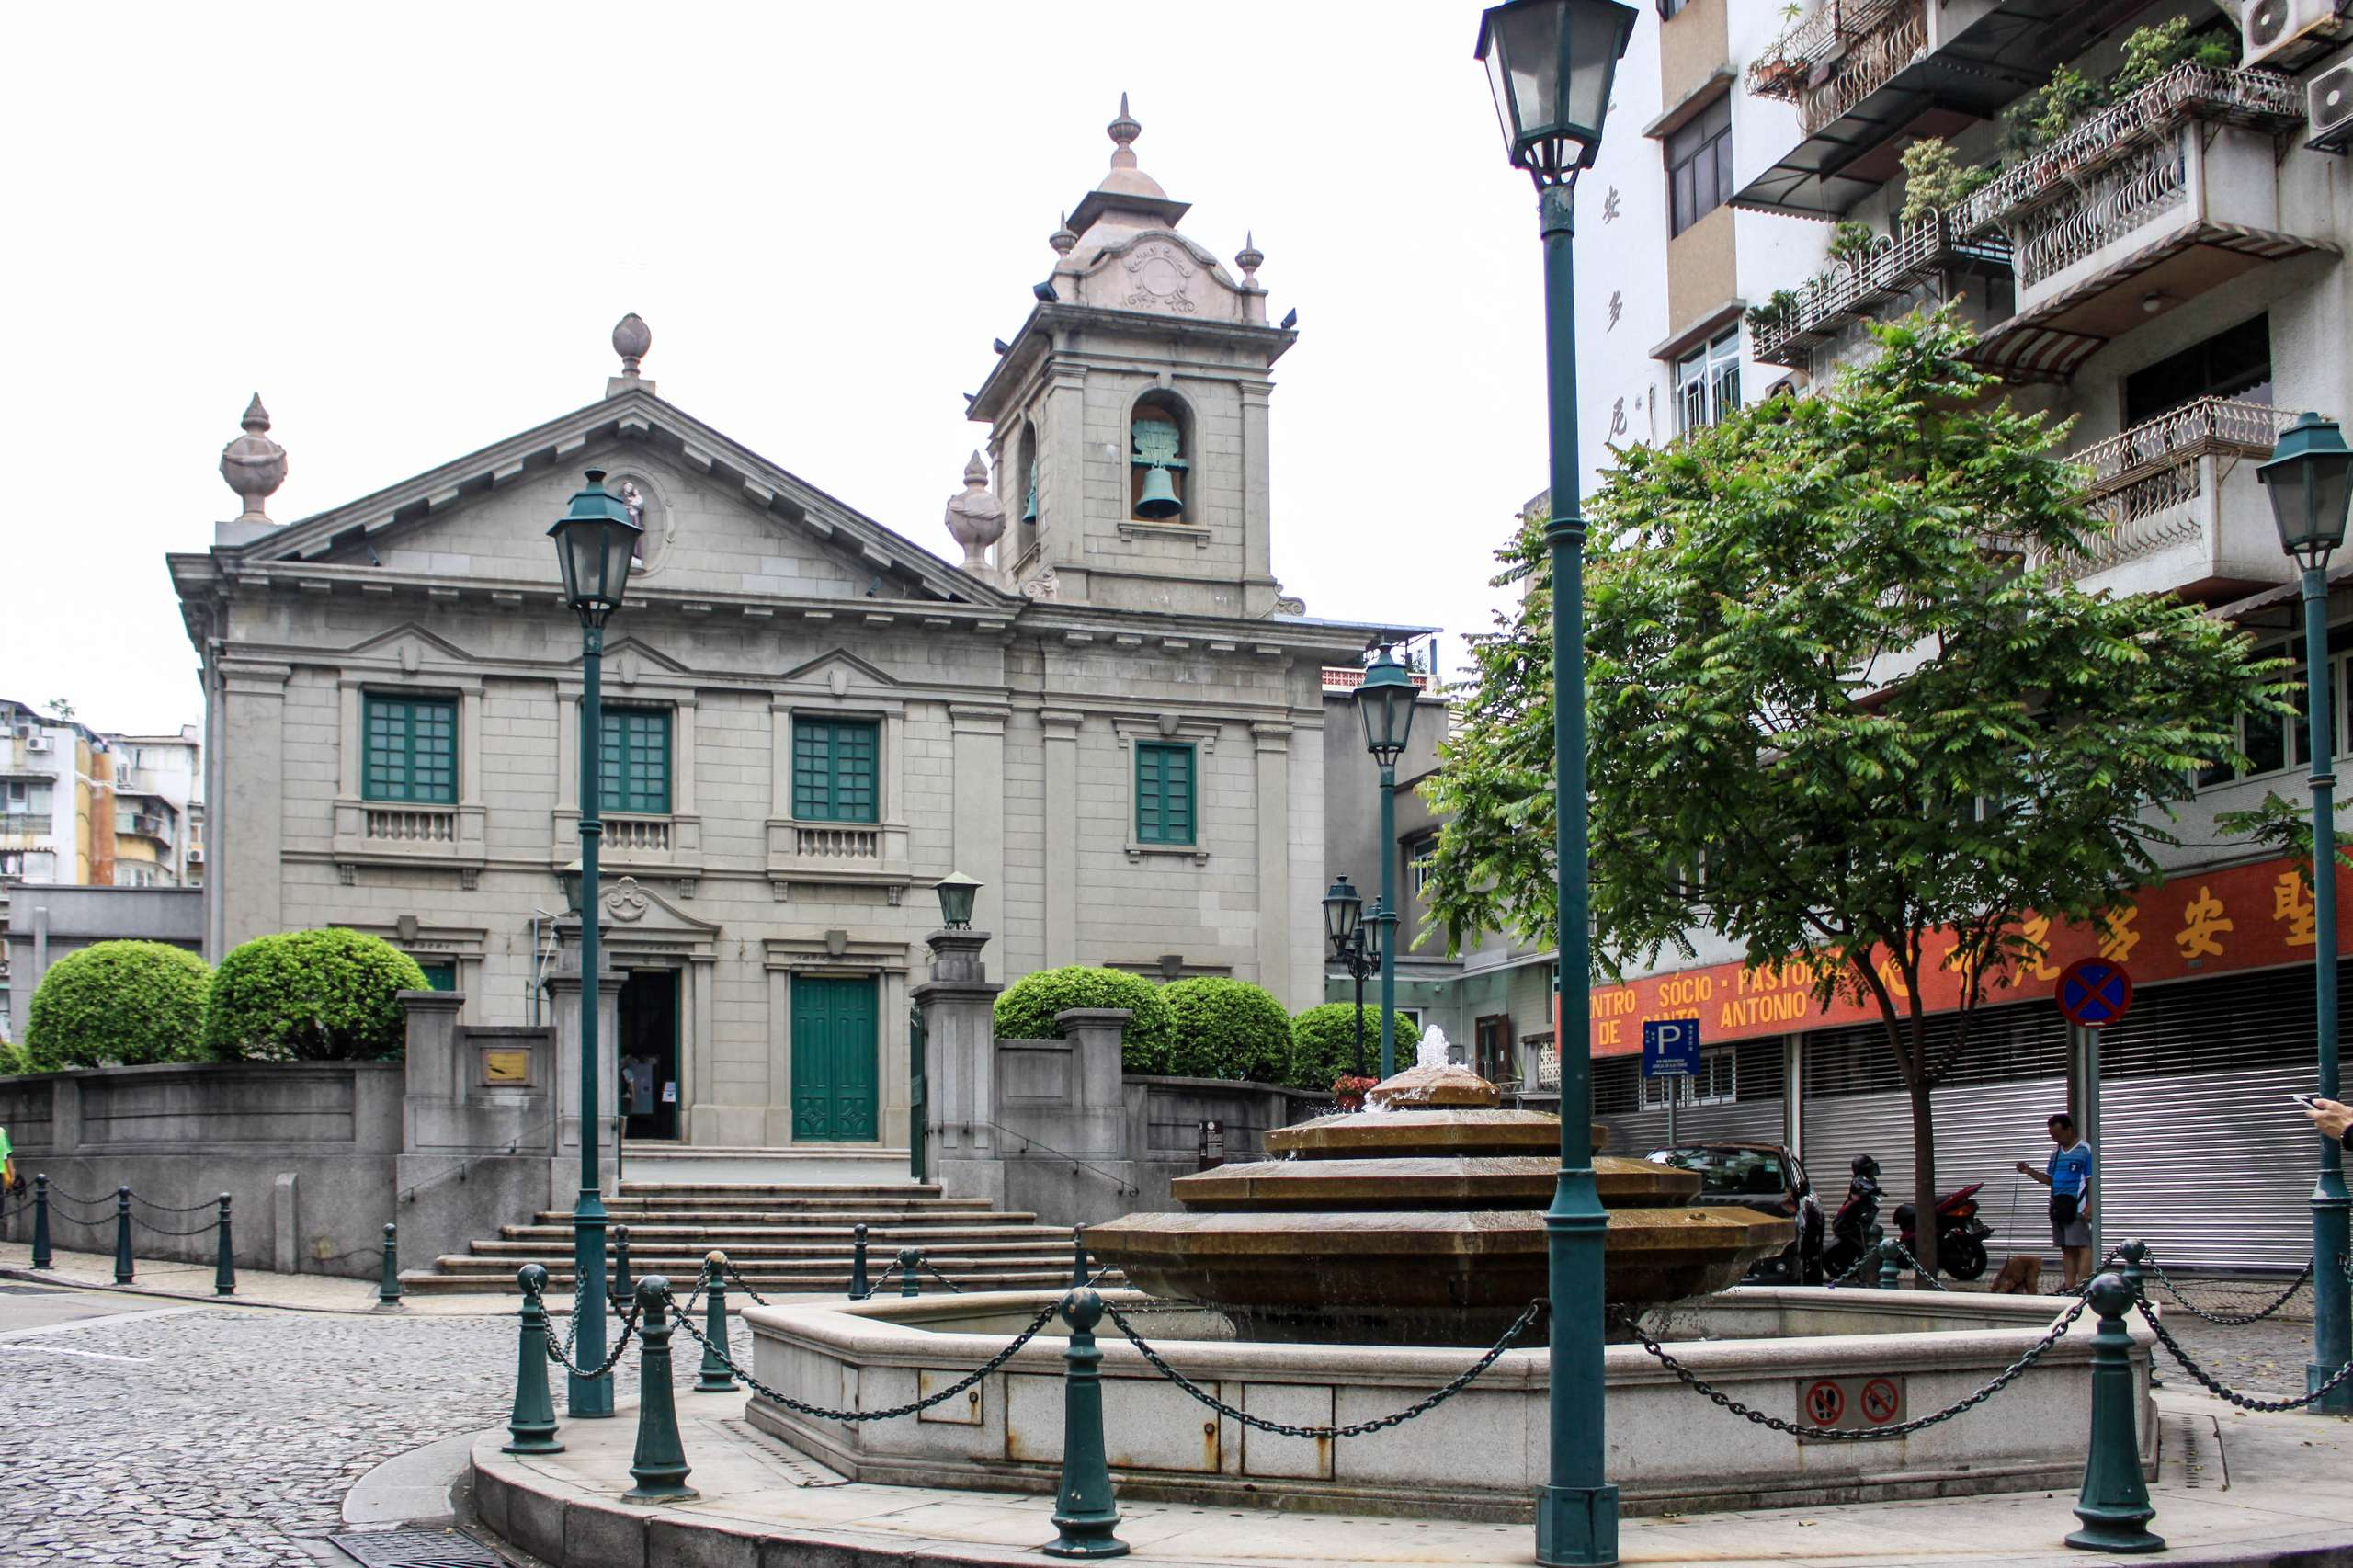 St. Anthony's church in Macau